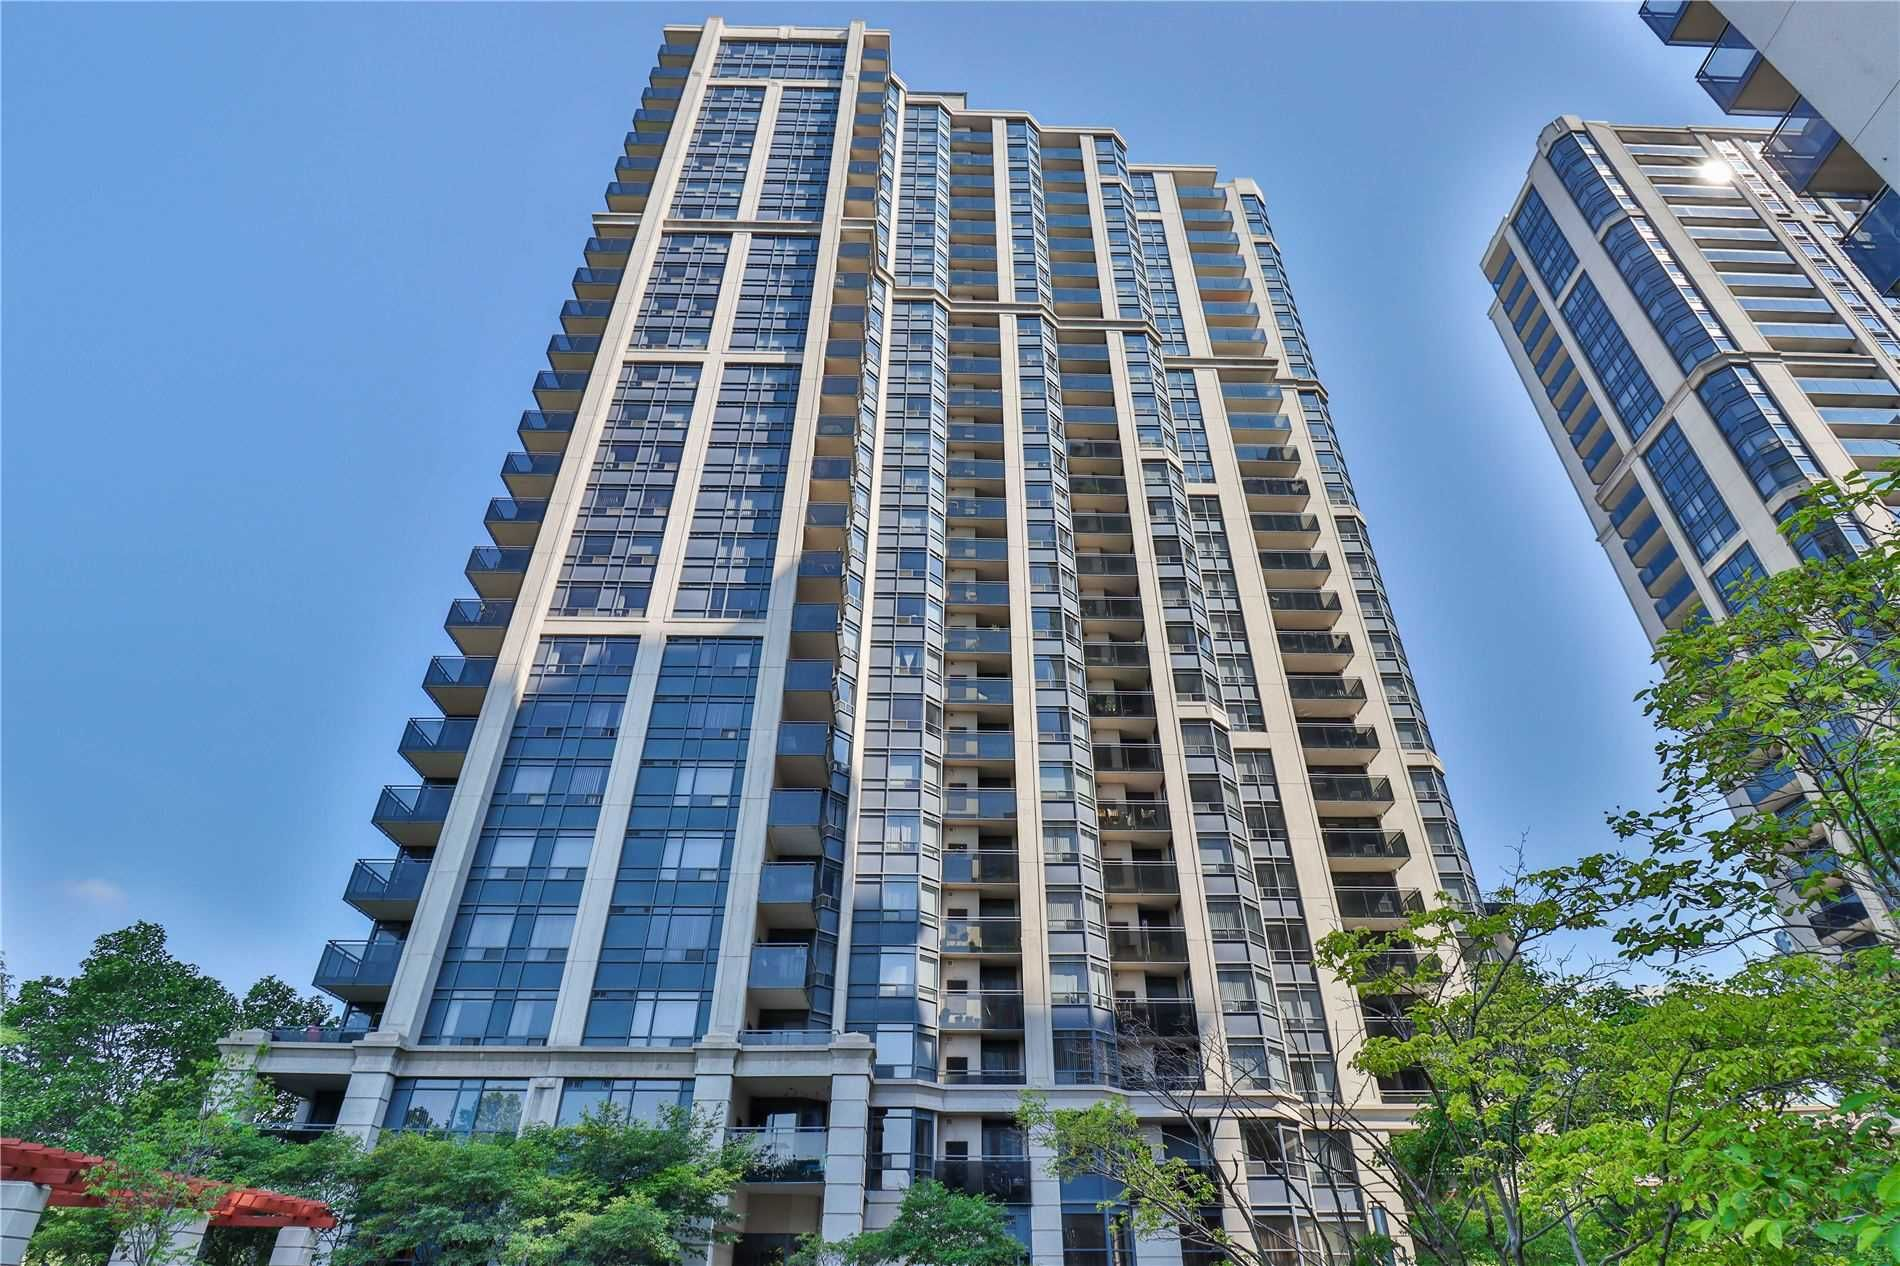 153 Beecroft Rd, unit 2011 for sale in Toronto - image #2